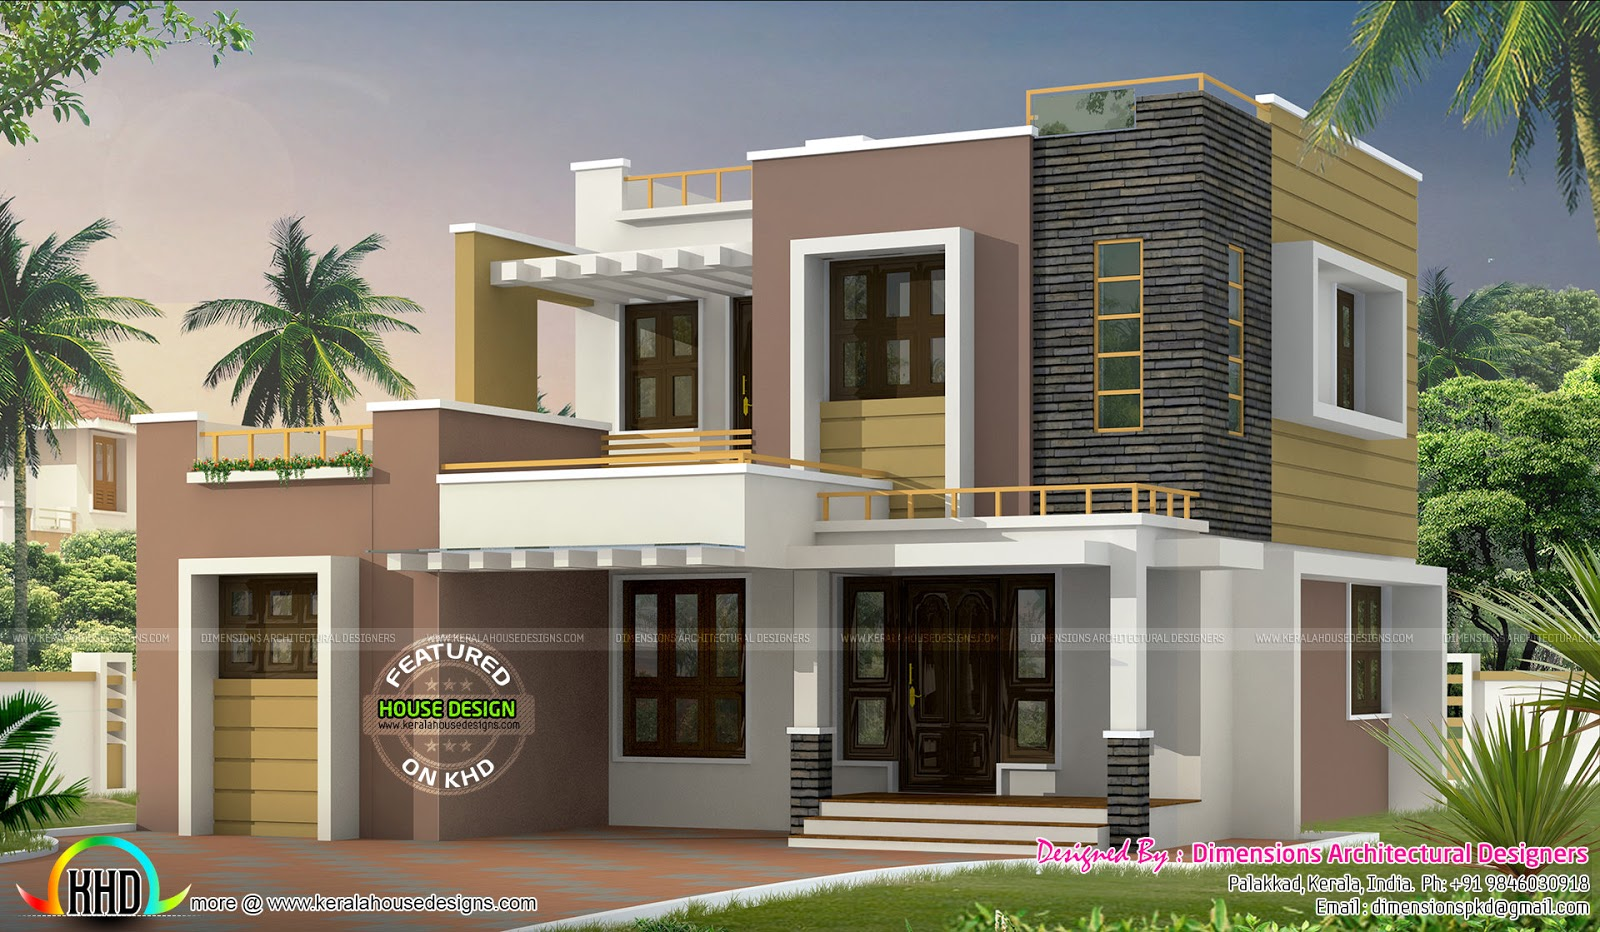 Architecture Design Kerala Model 1500 sq-ft contemporary home | kerala home design | bloglovin'